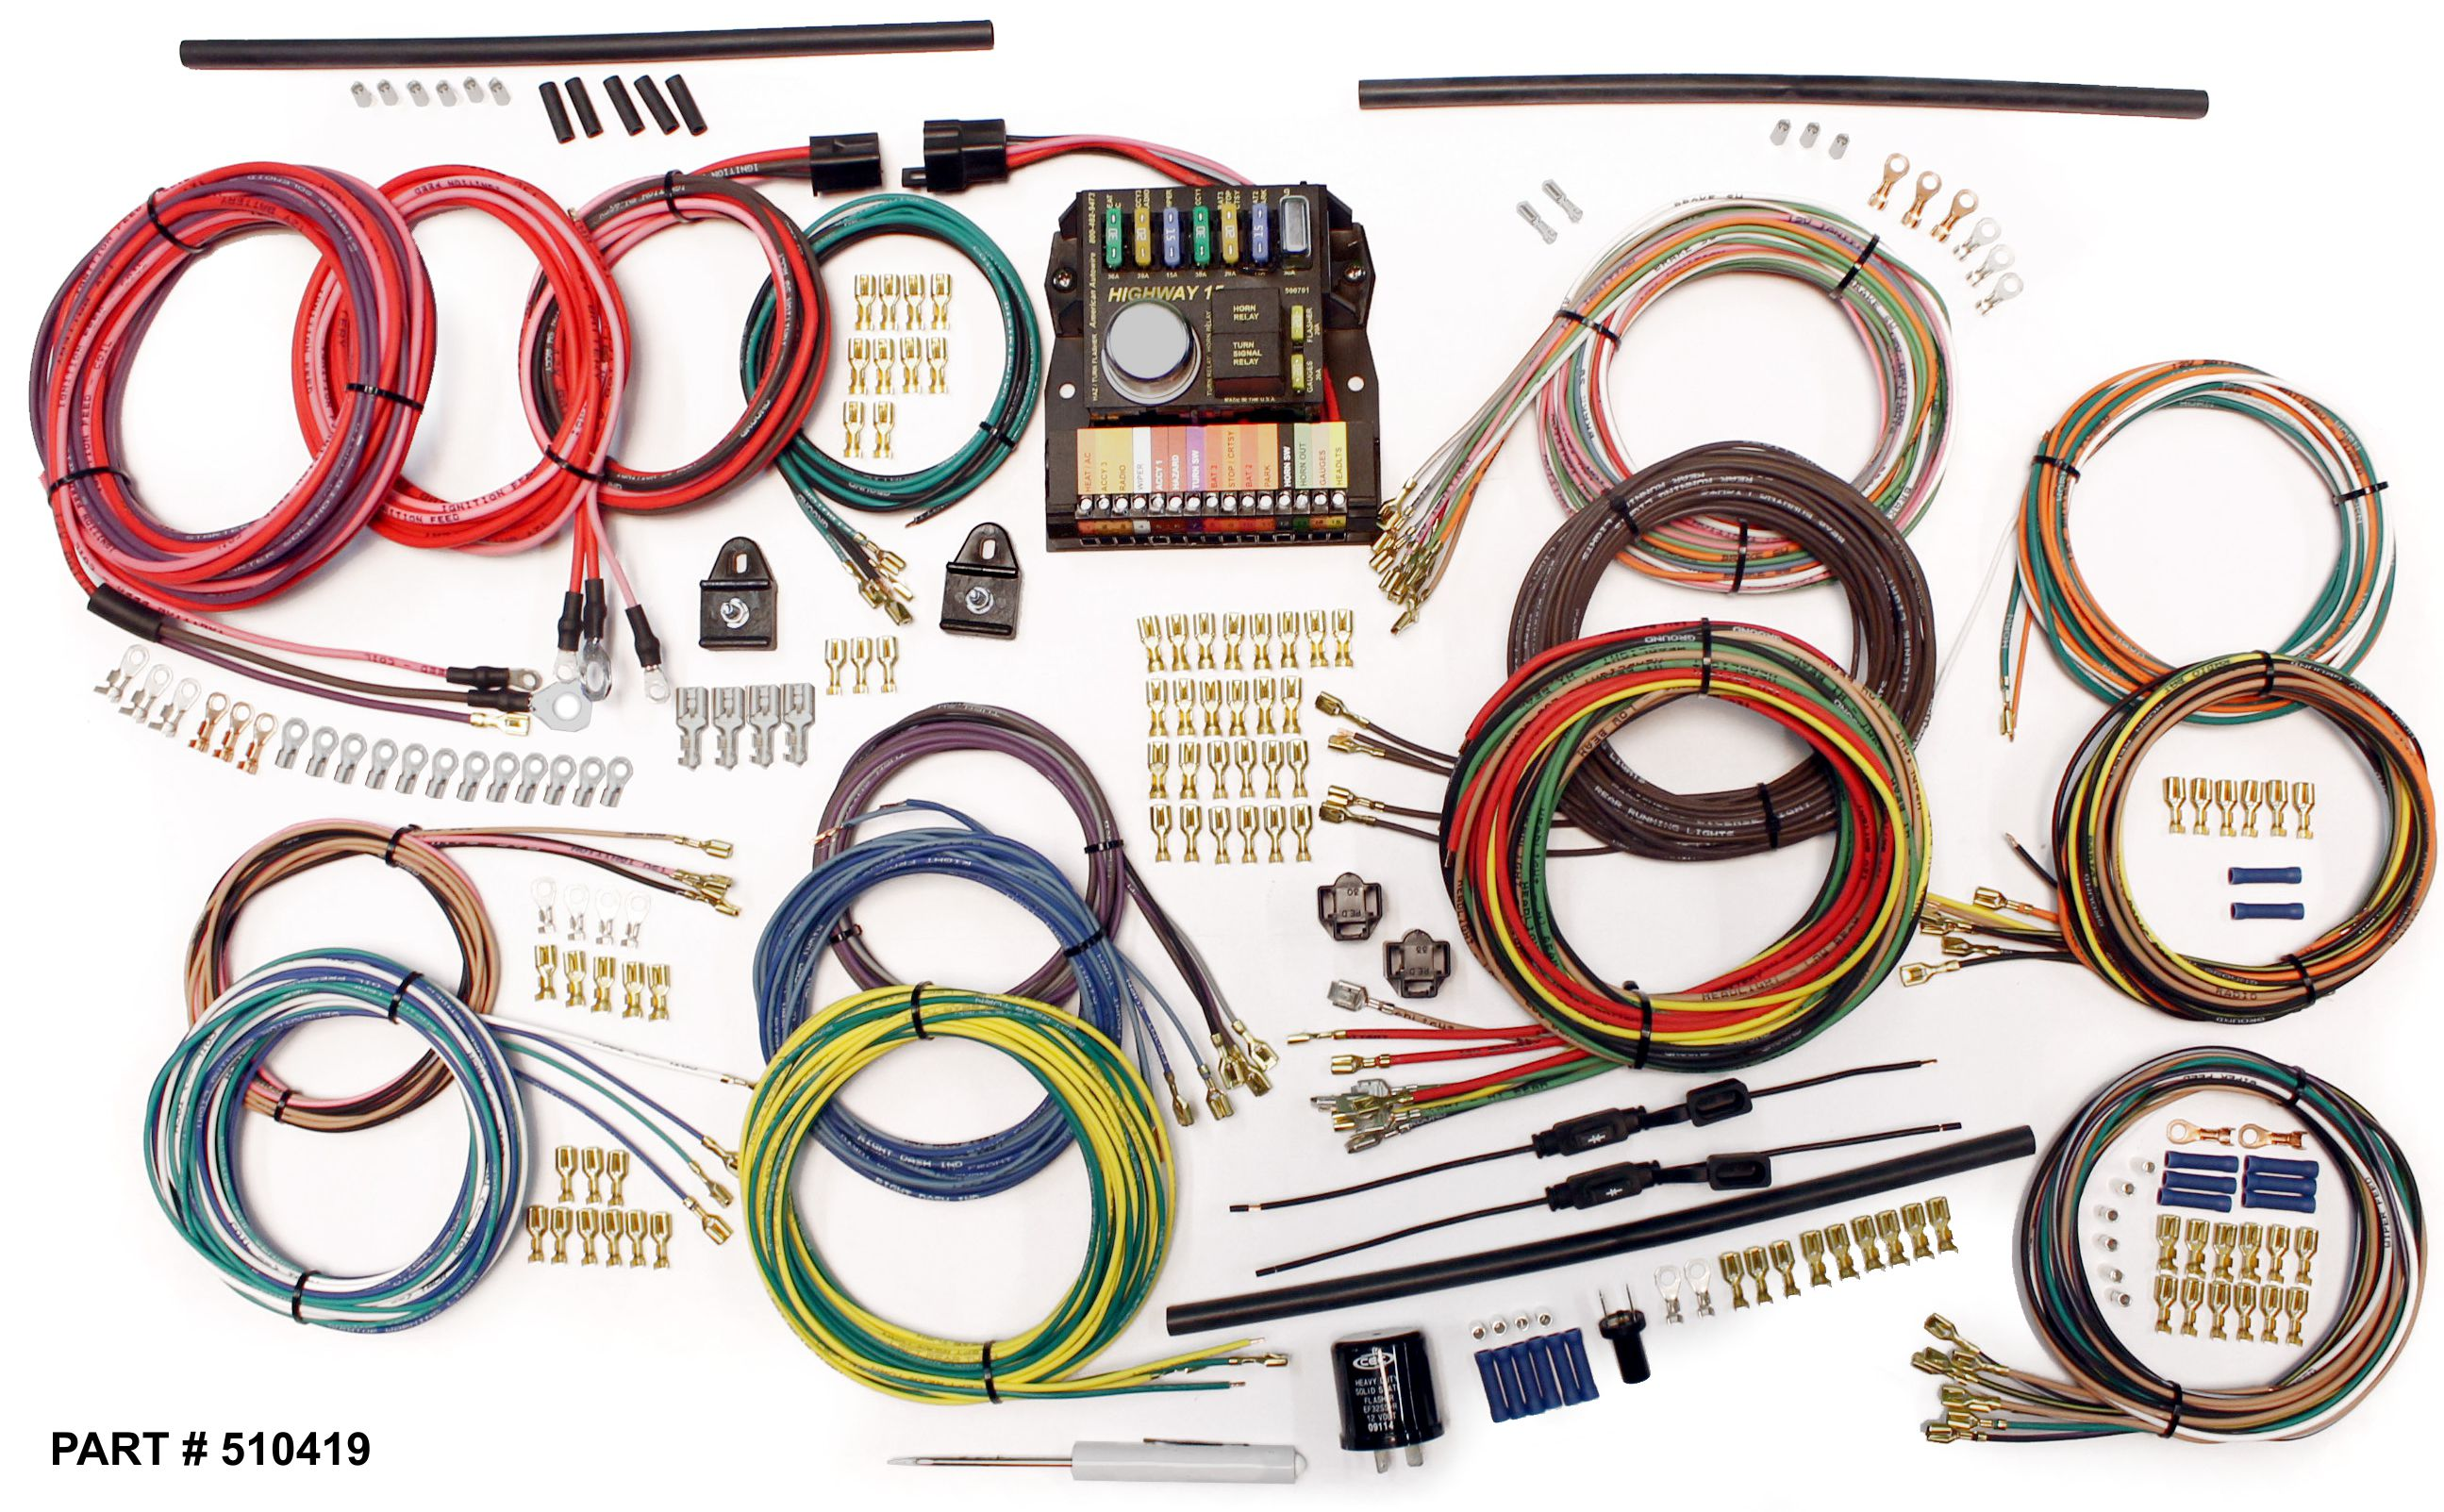 Vw Alternator Wiring Harness | Wiring Diagram on jeep wrangler alternator wiring harness, vw jetta trailer wiring harness, volvo xc90 alternator wiring harness, ford ranger alternator wiring harness, bmw z3 alternator wiring harness,